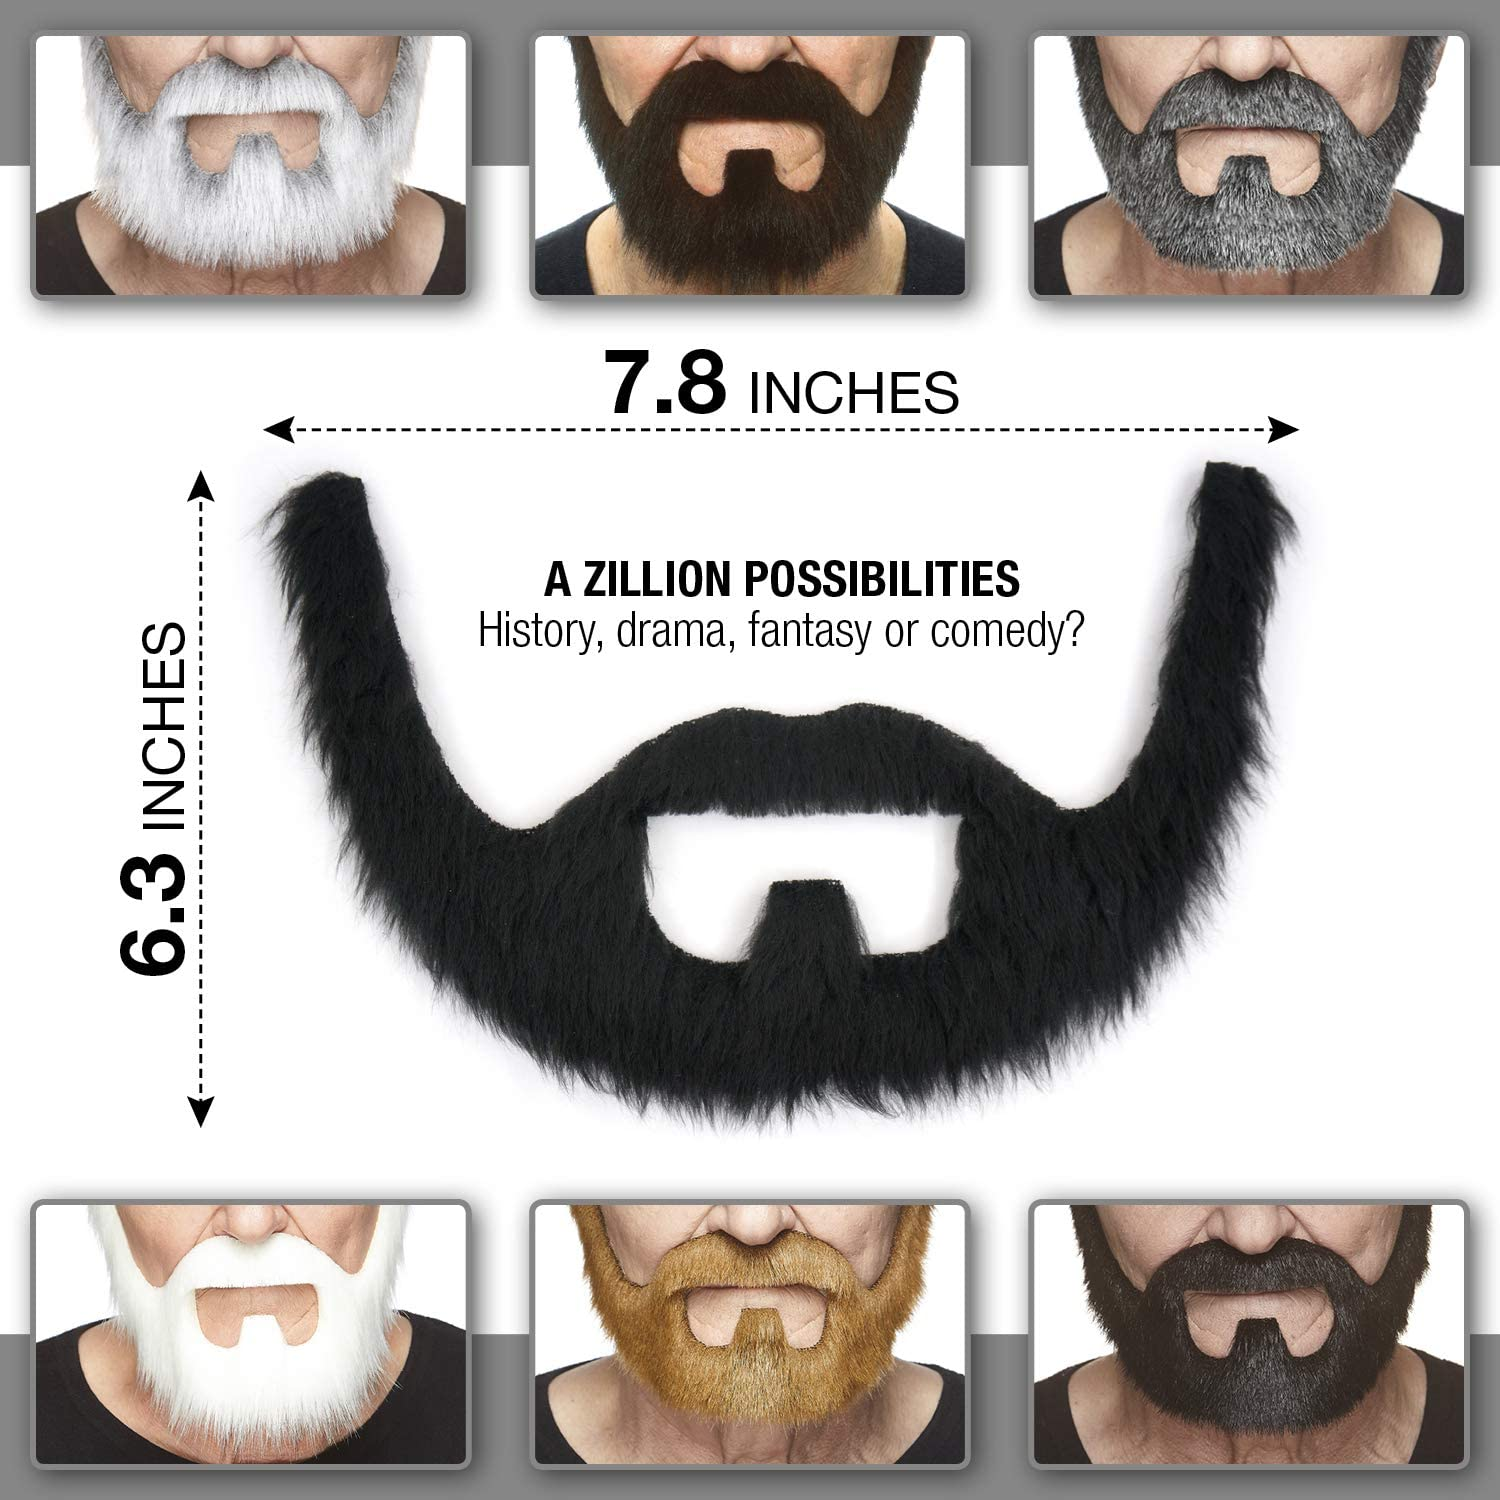 New Long Beard and Moustach Historical Book Character Fancy dress